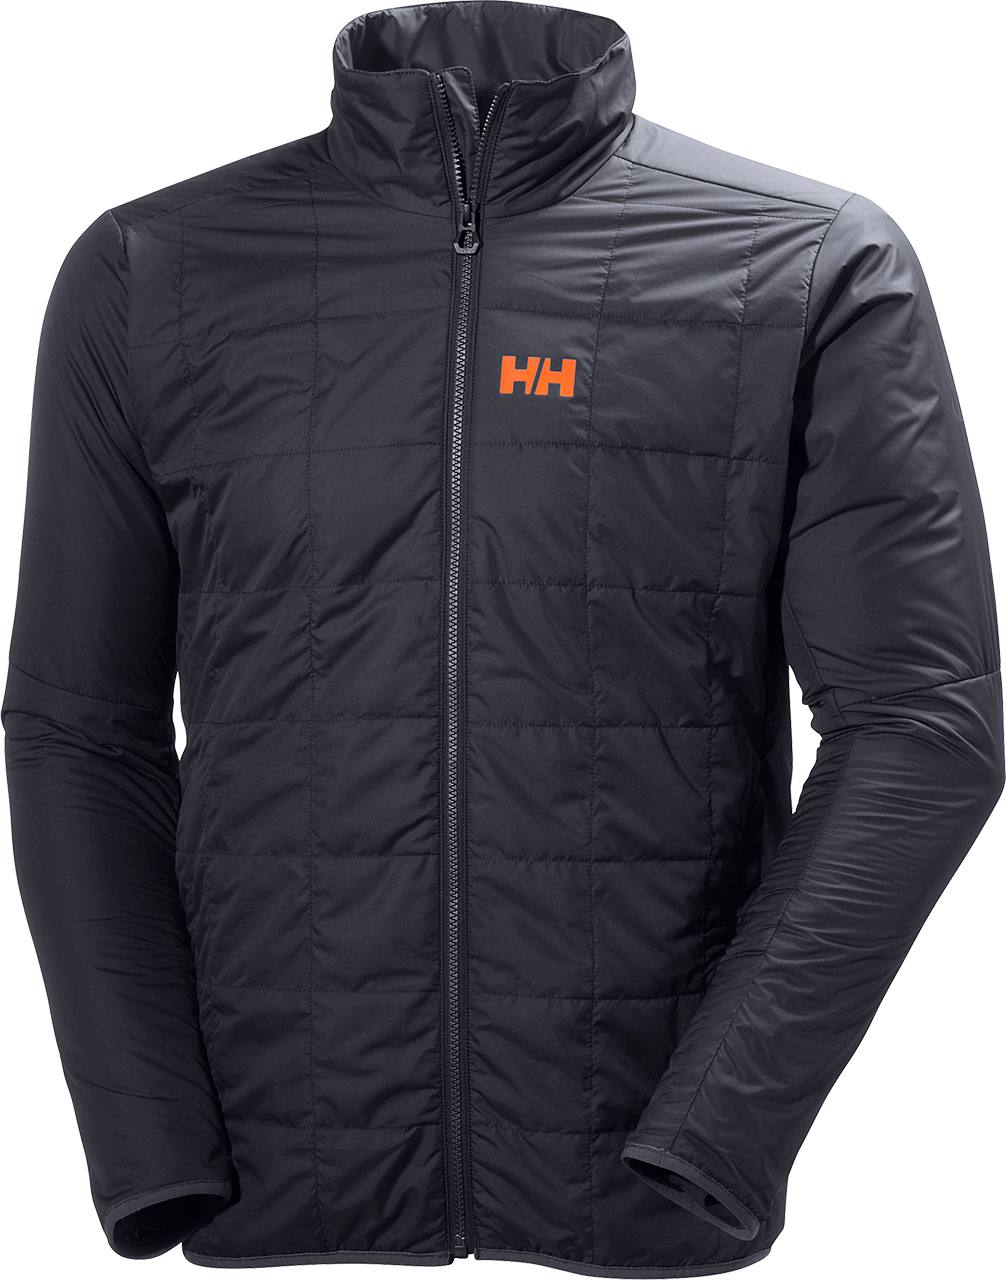 Helly Hansen Sogn Insulator Jacket. Full image ... 2334ed5b4